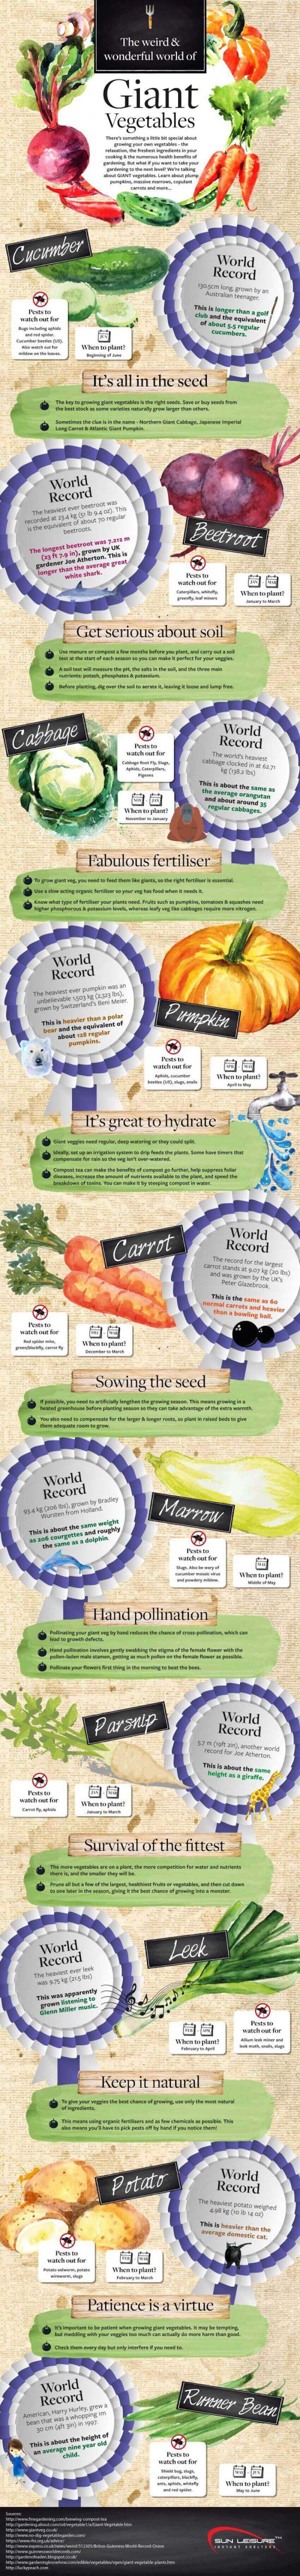 Fall DIY projects: This nifty infographic digs deep into the wacky world of giant vegetables and how to grow them.